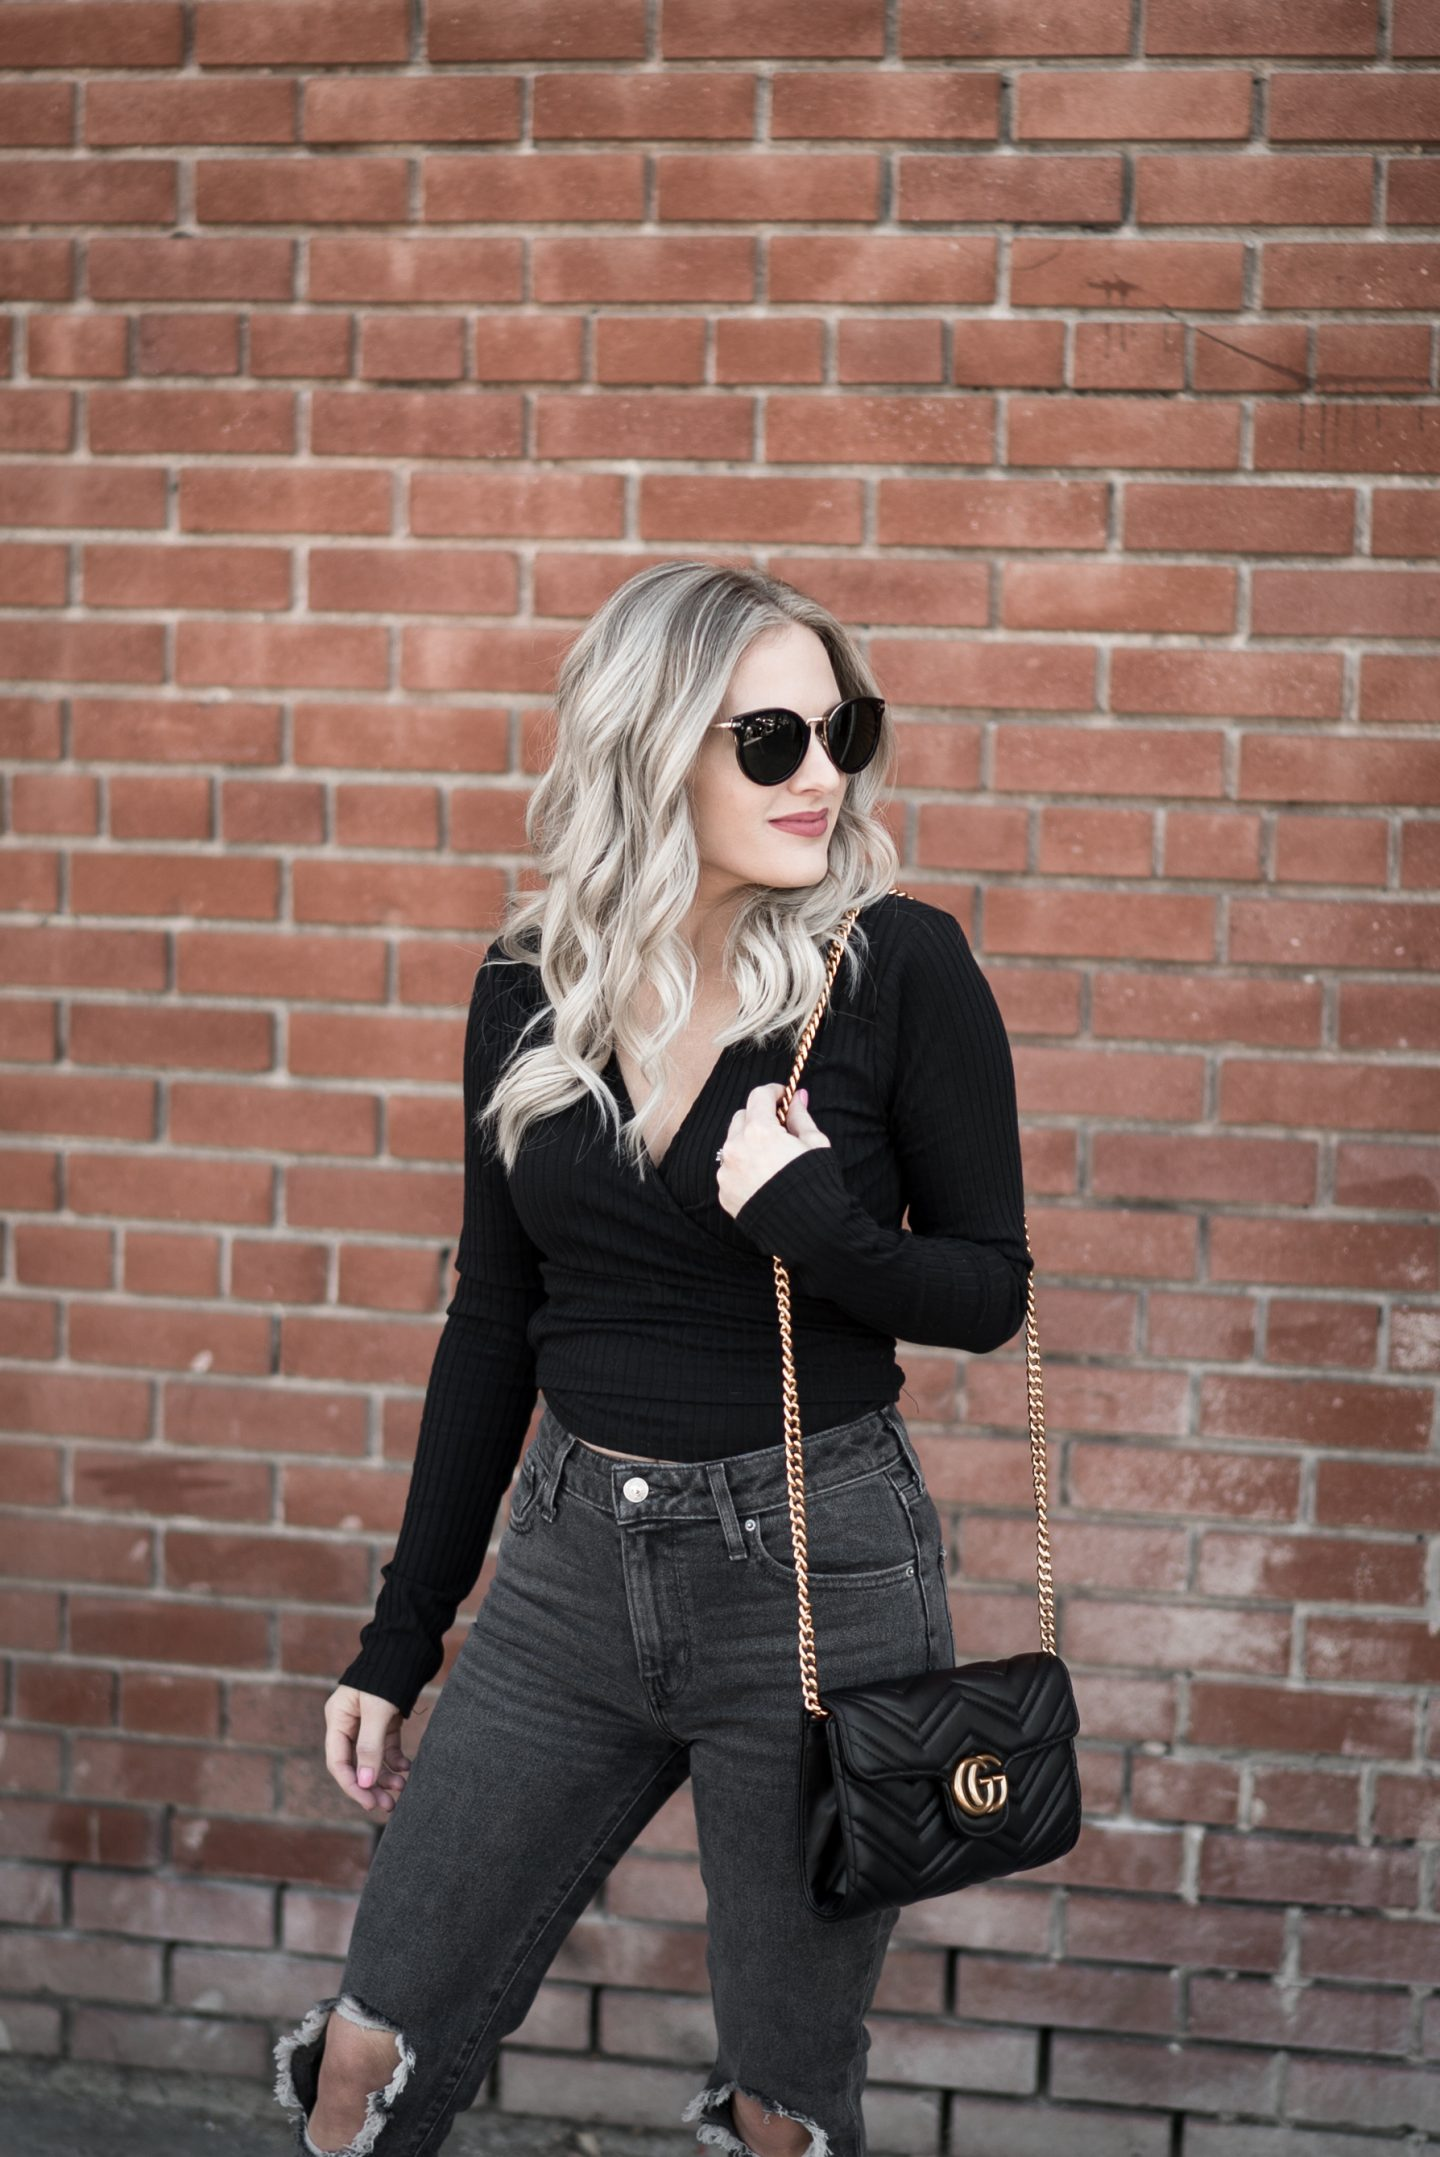 wrap top all black outfit levi jeans celine sunglasses gucci bag blonde hair